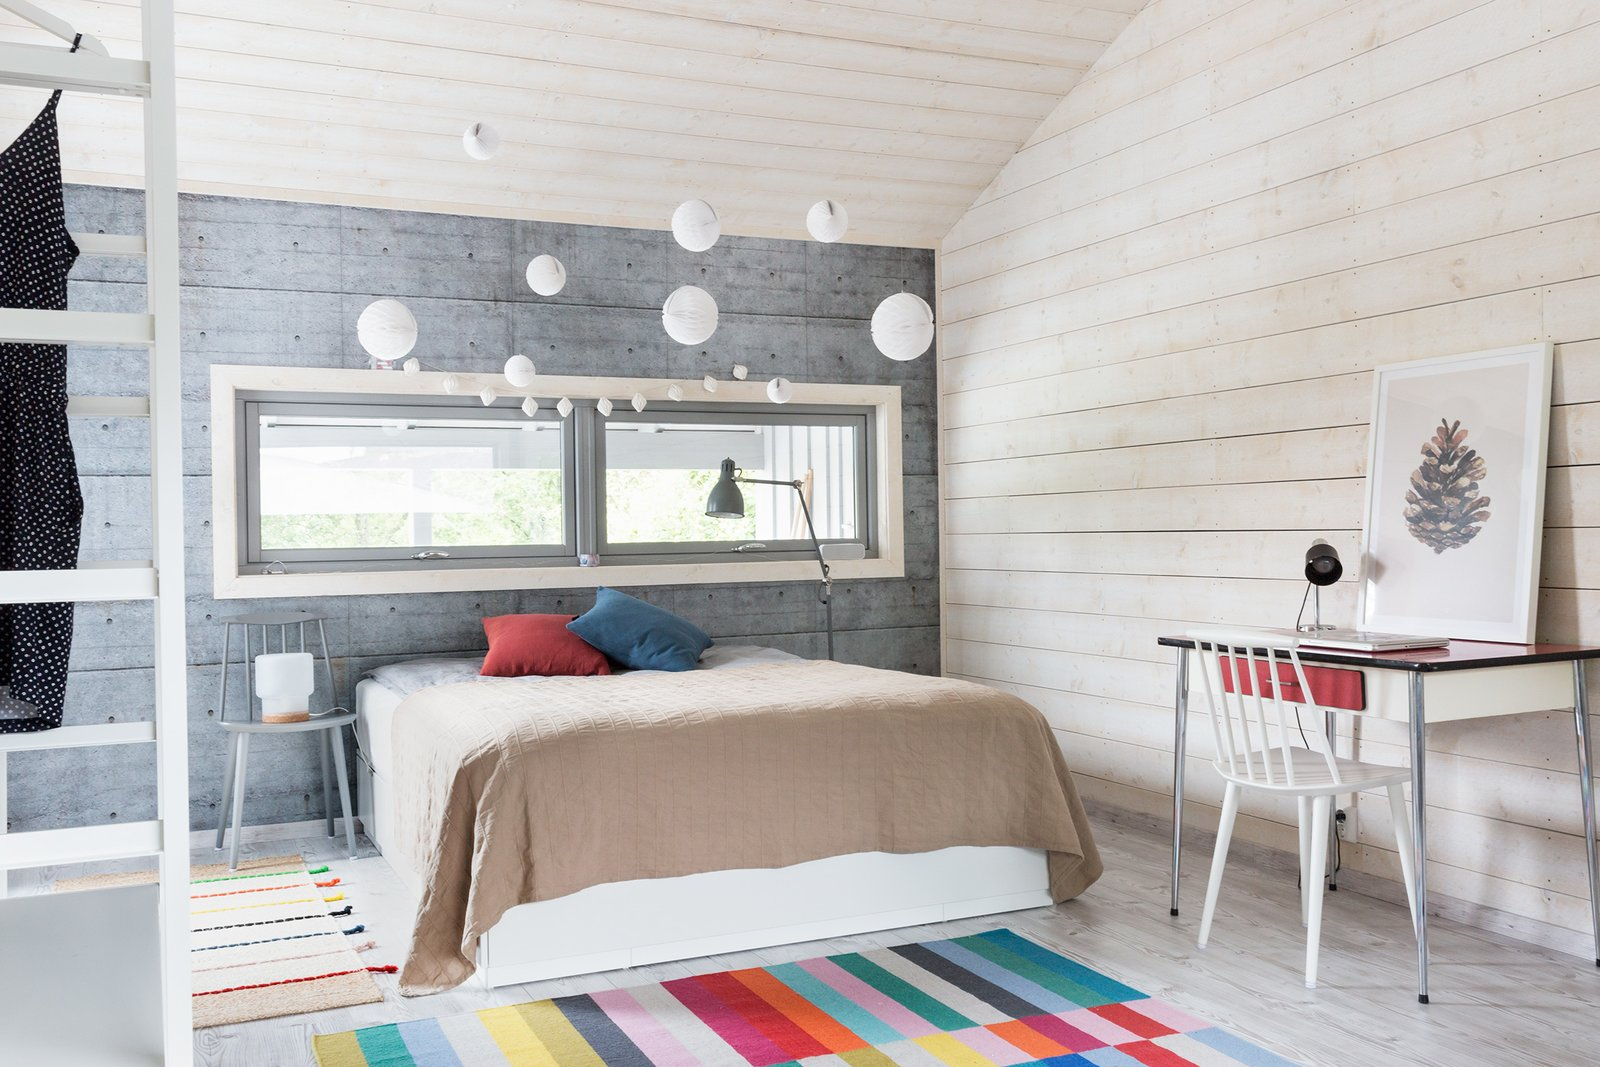 """Bedroom, Chair, Floor Lighting, Light Hardwood Floor, Table Lighting, Bed, and Rug Floor The spacious master bedroom has light wooden floors and walls.  Photo 8 of 13 in Relax and Recharge at This Charming Norwegian """"Hytte"""" Rental"""